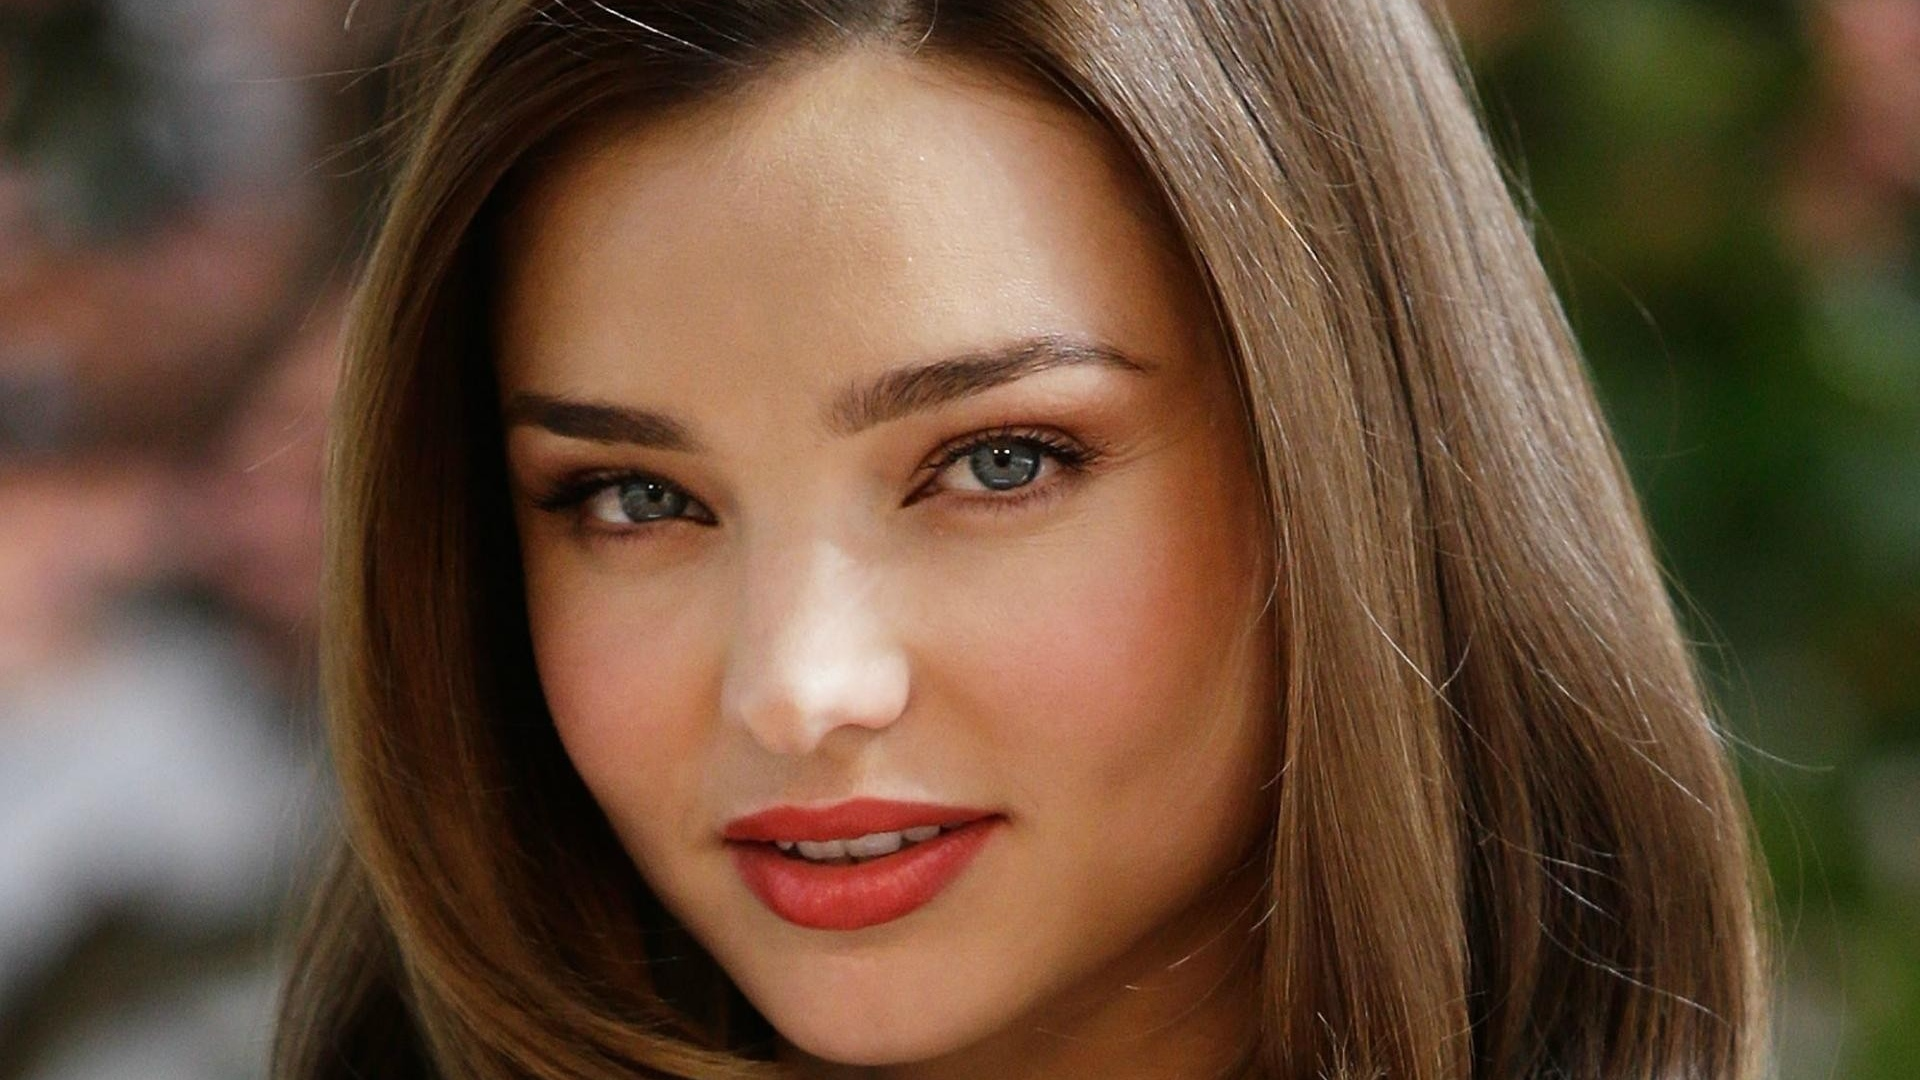 Beautiful Smile Wallpaper: Miranda Kerr Wallpapers High Resolution And Quality Download